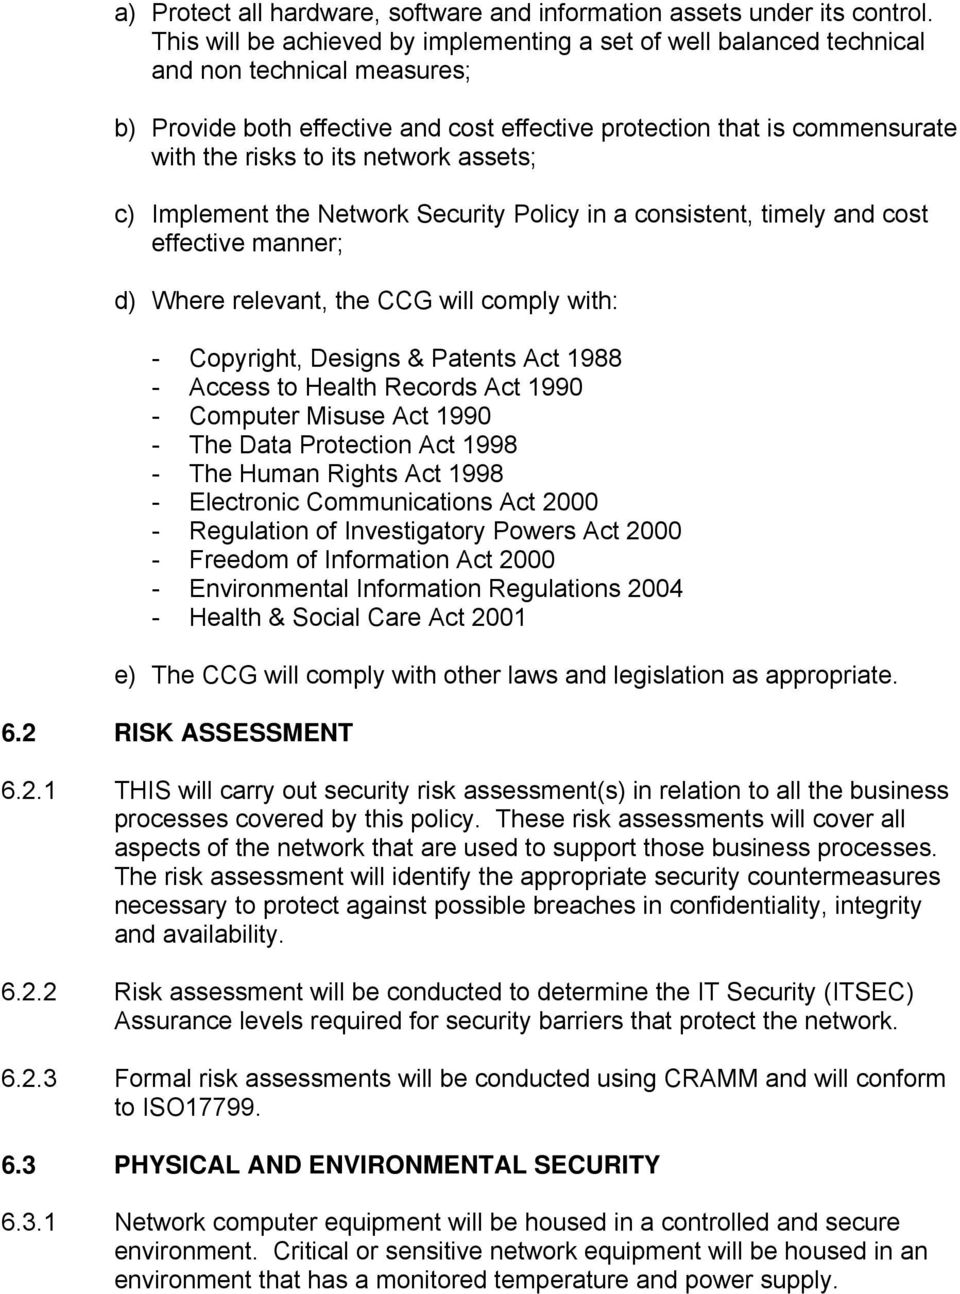 network assets; c) Implement the Network Security Policy in a consistent, timely and cost effective manner; d) Where relevant, the CCG will comply with: - Copyright, Designs & Patents Act 1988 -